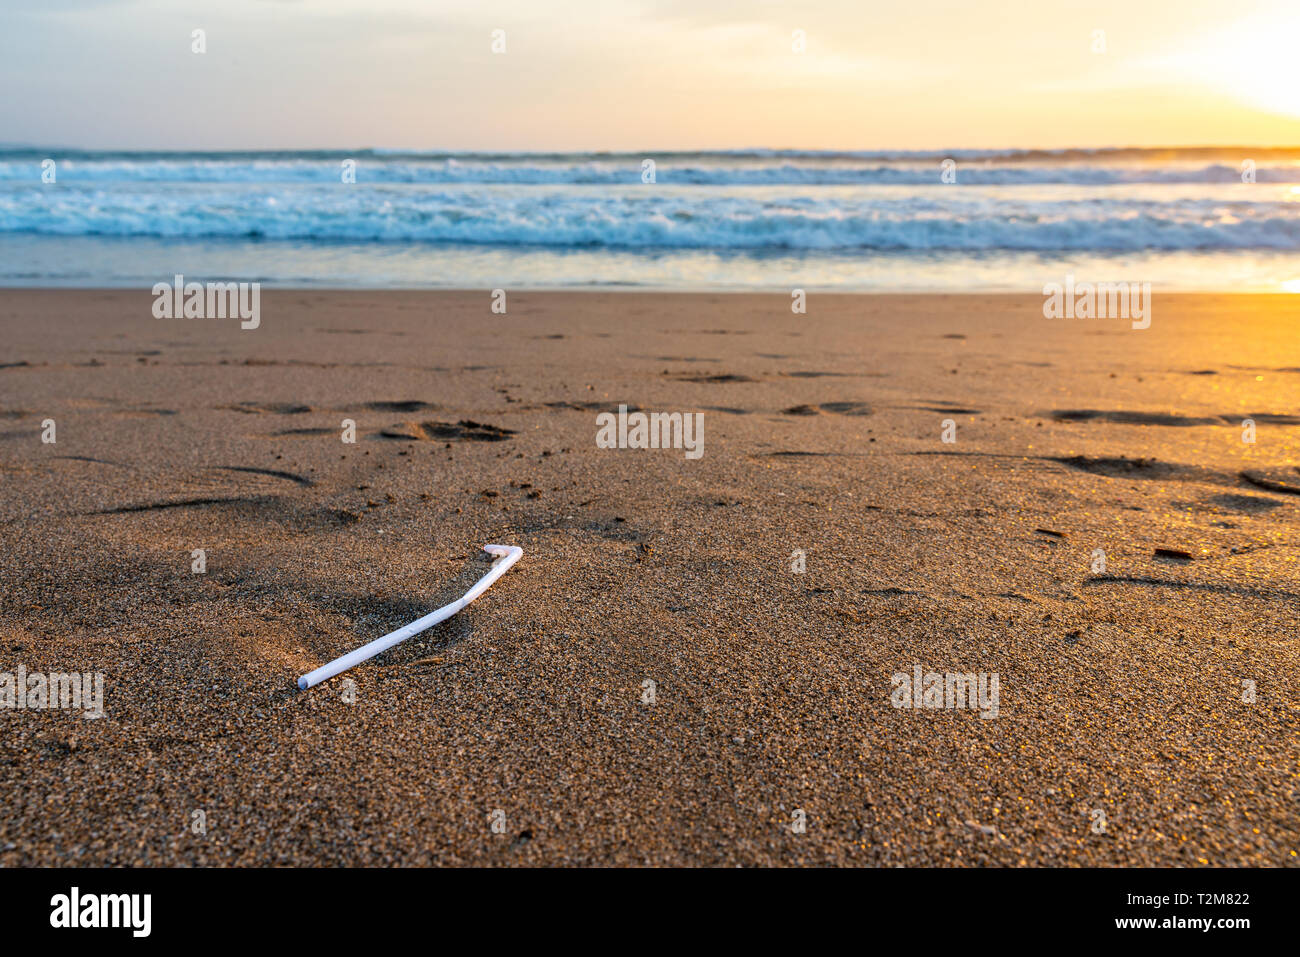 A single plastic straw on a beach at sunset, plastic pollution concept - Stock Image